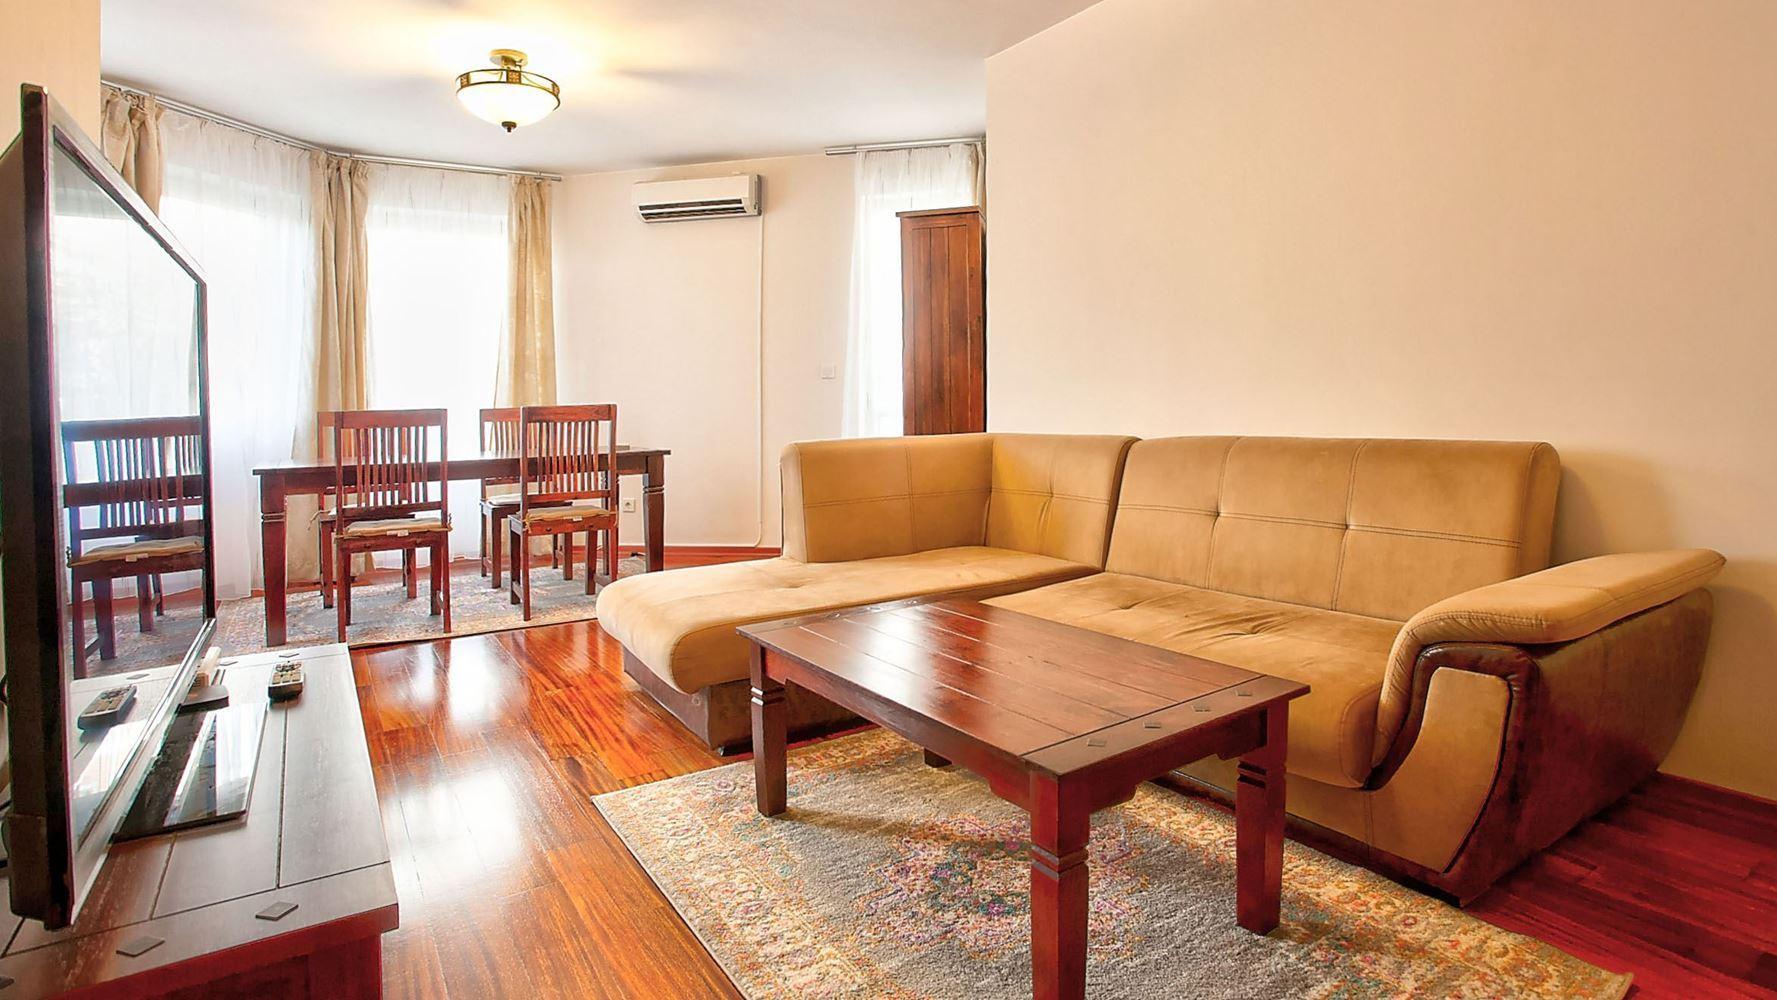 2-bedroom Apartment for Rent, Mladost 3